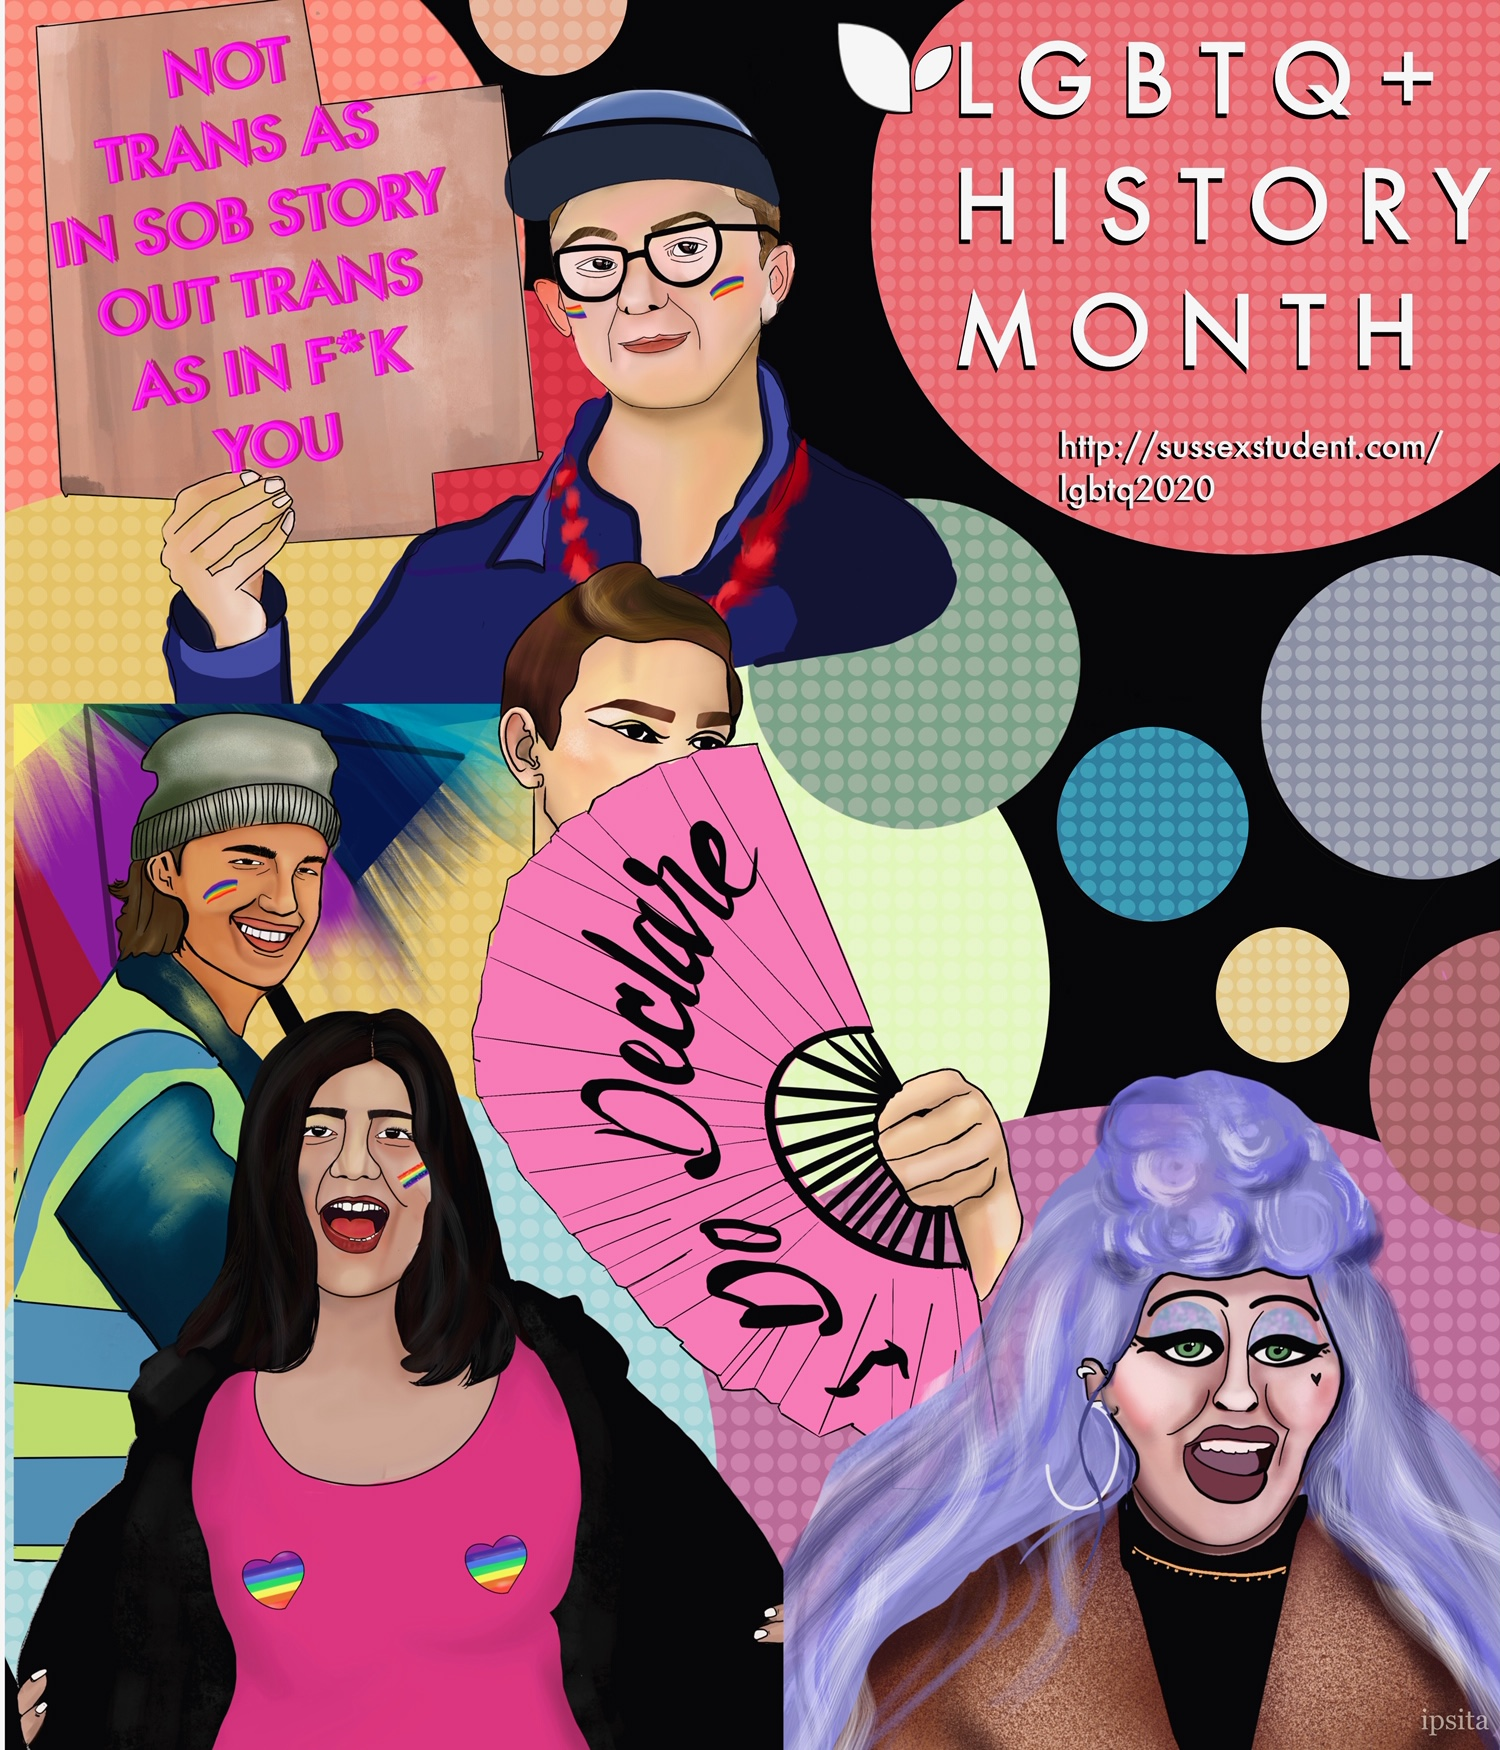 University of Sussex LGBTQ History Month